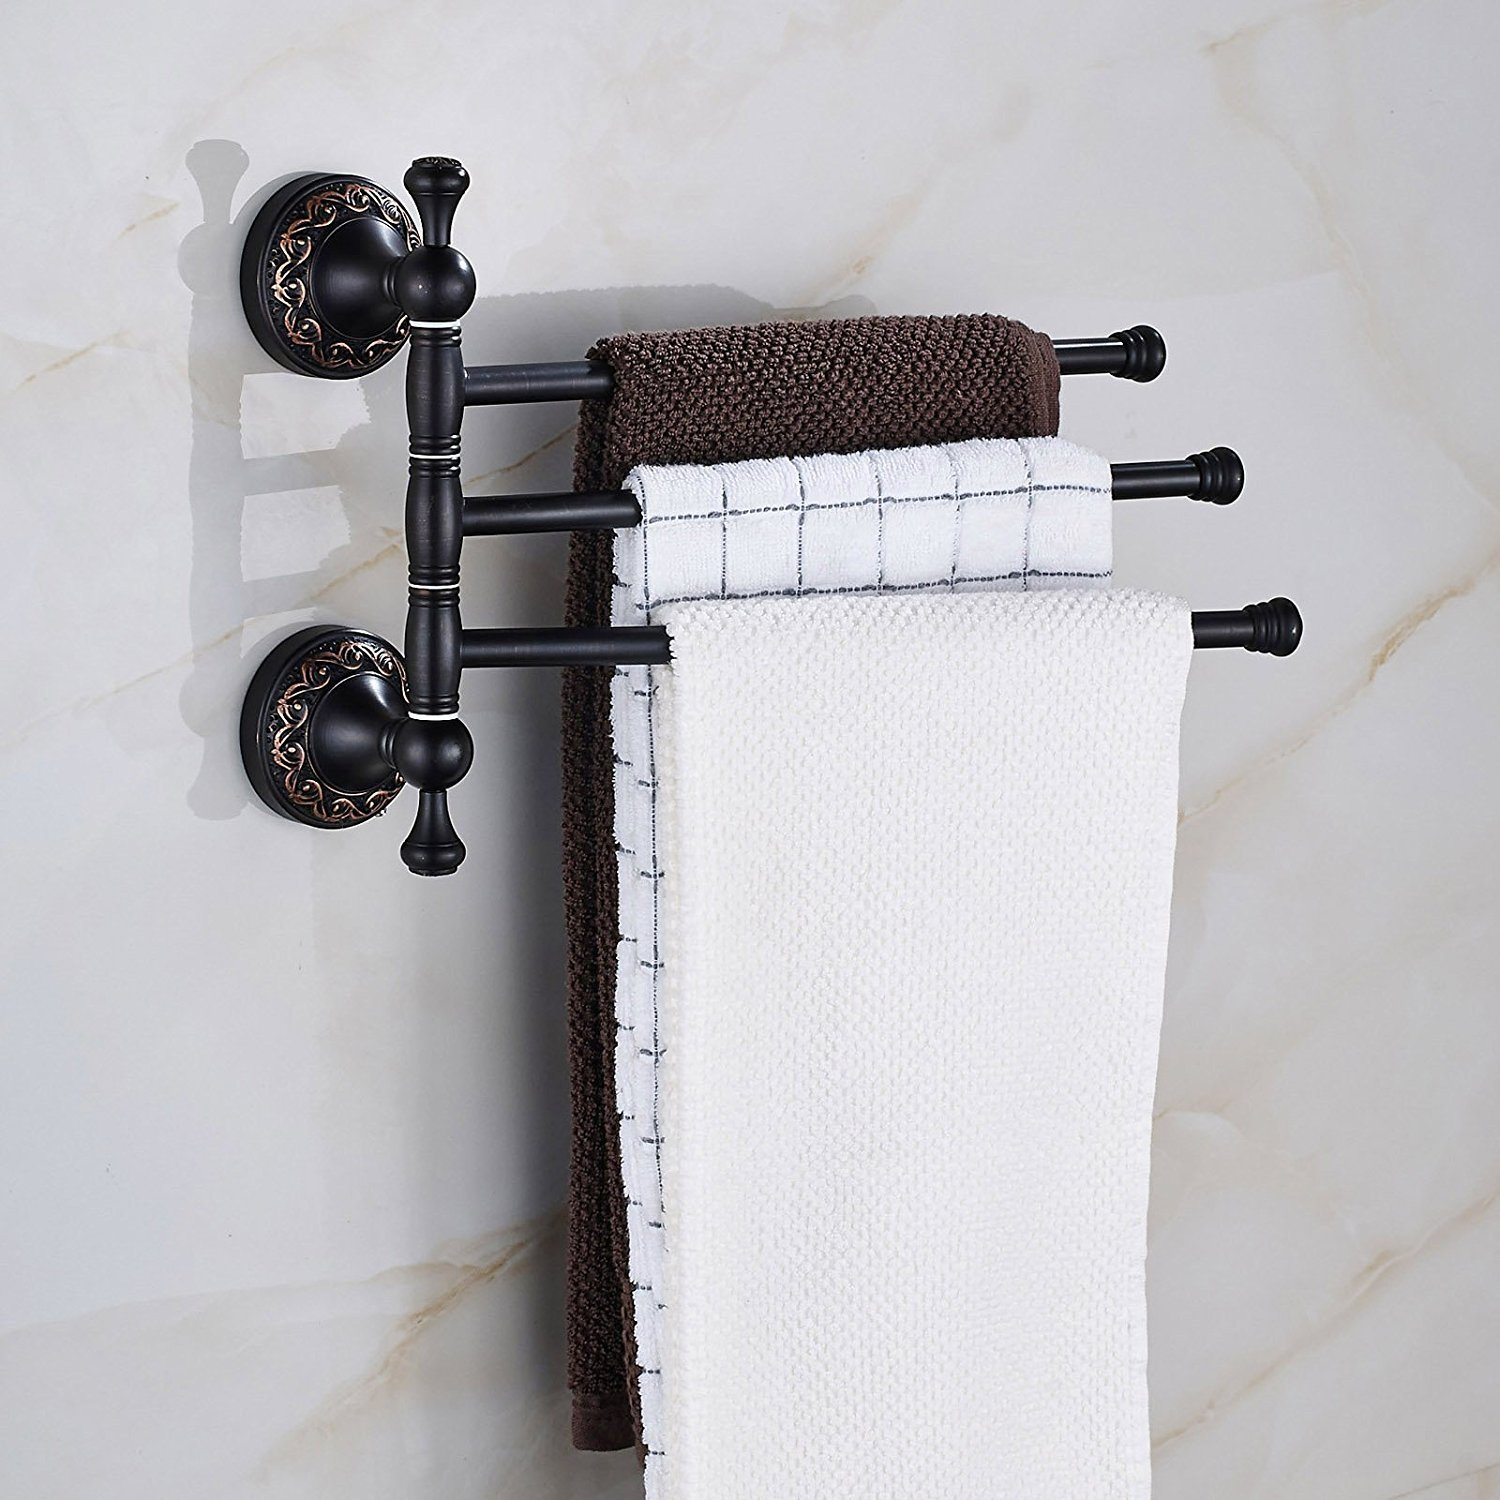 Amazon.com: Oulantron Oil Rubbed Bronze Active 3 Towel Bars Wall ...